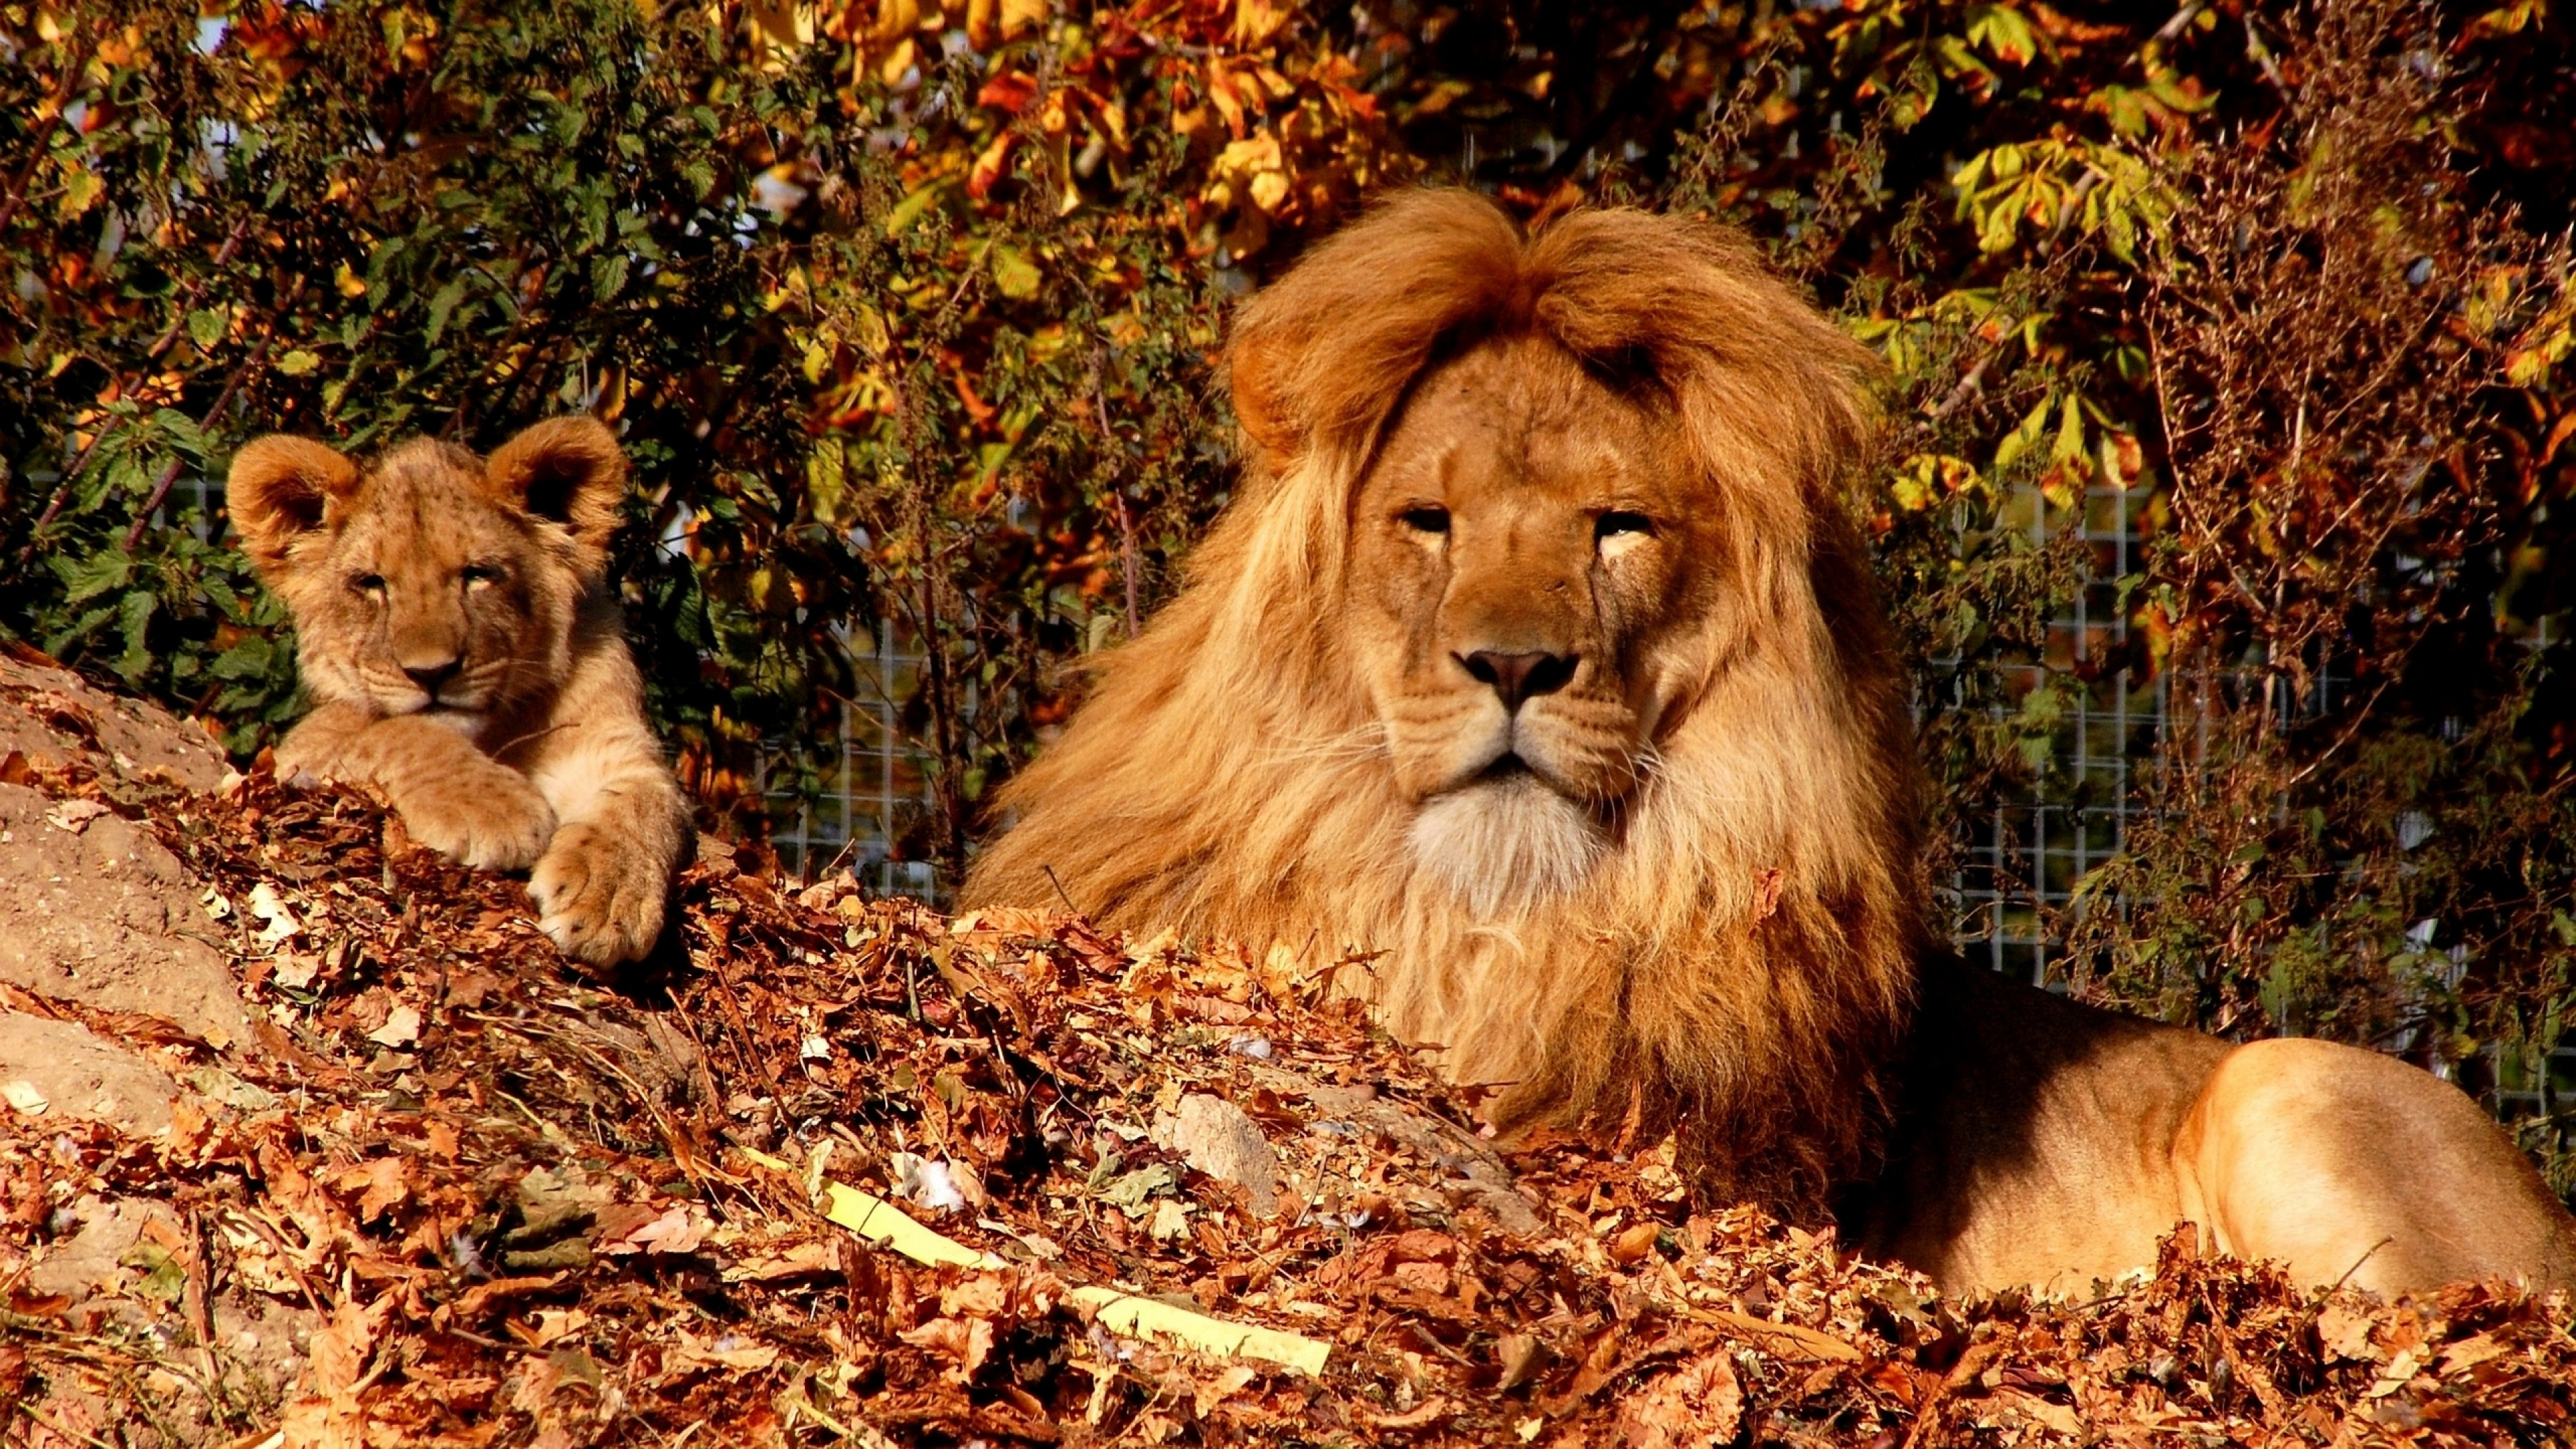 3d Galaxy Wallpaper Widescreen Lion And His Cub 4k Ultra Hd Wallpaper Background Image